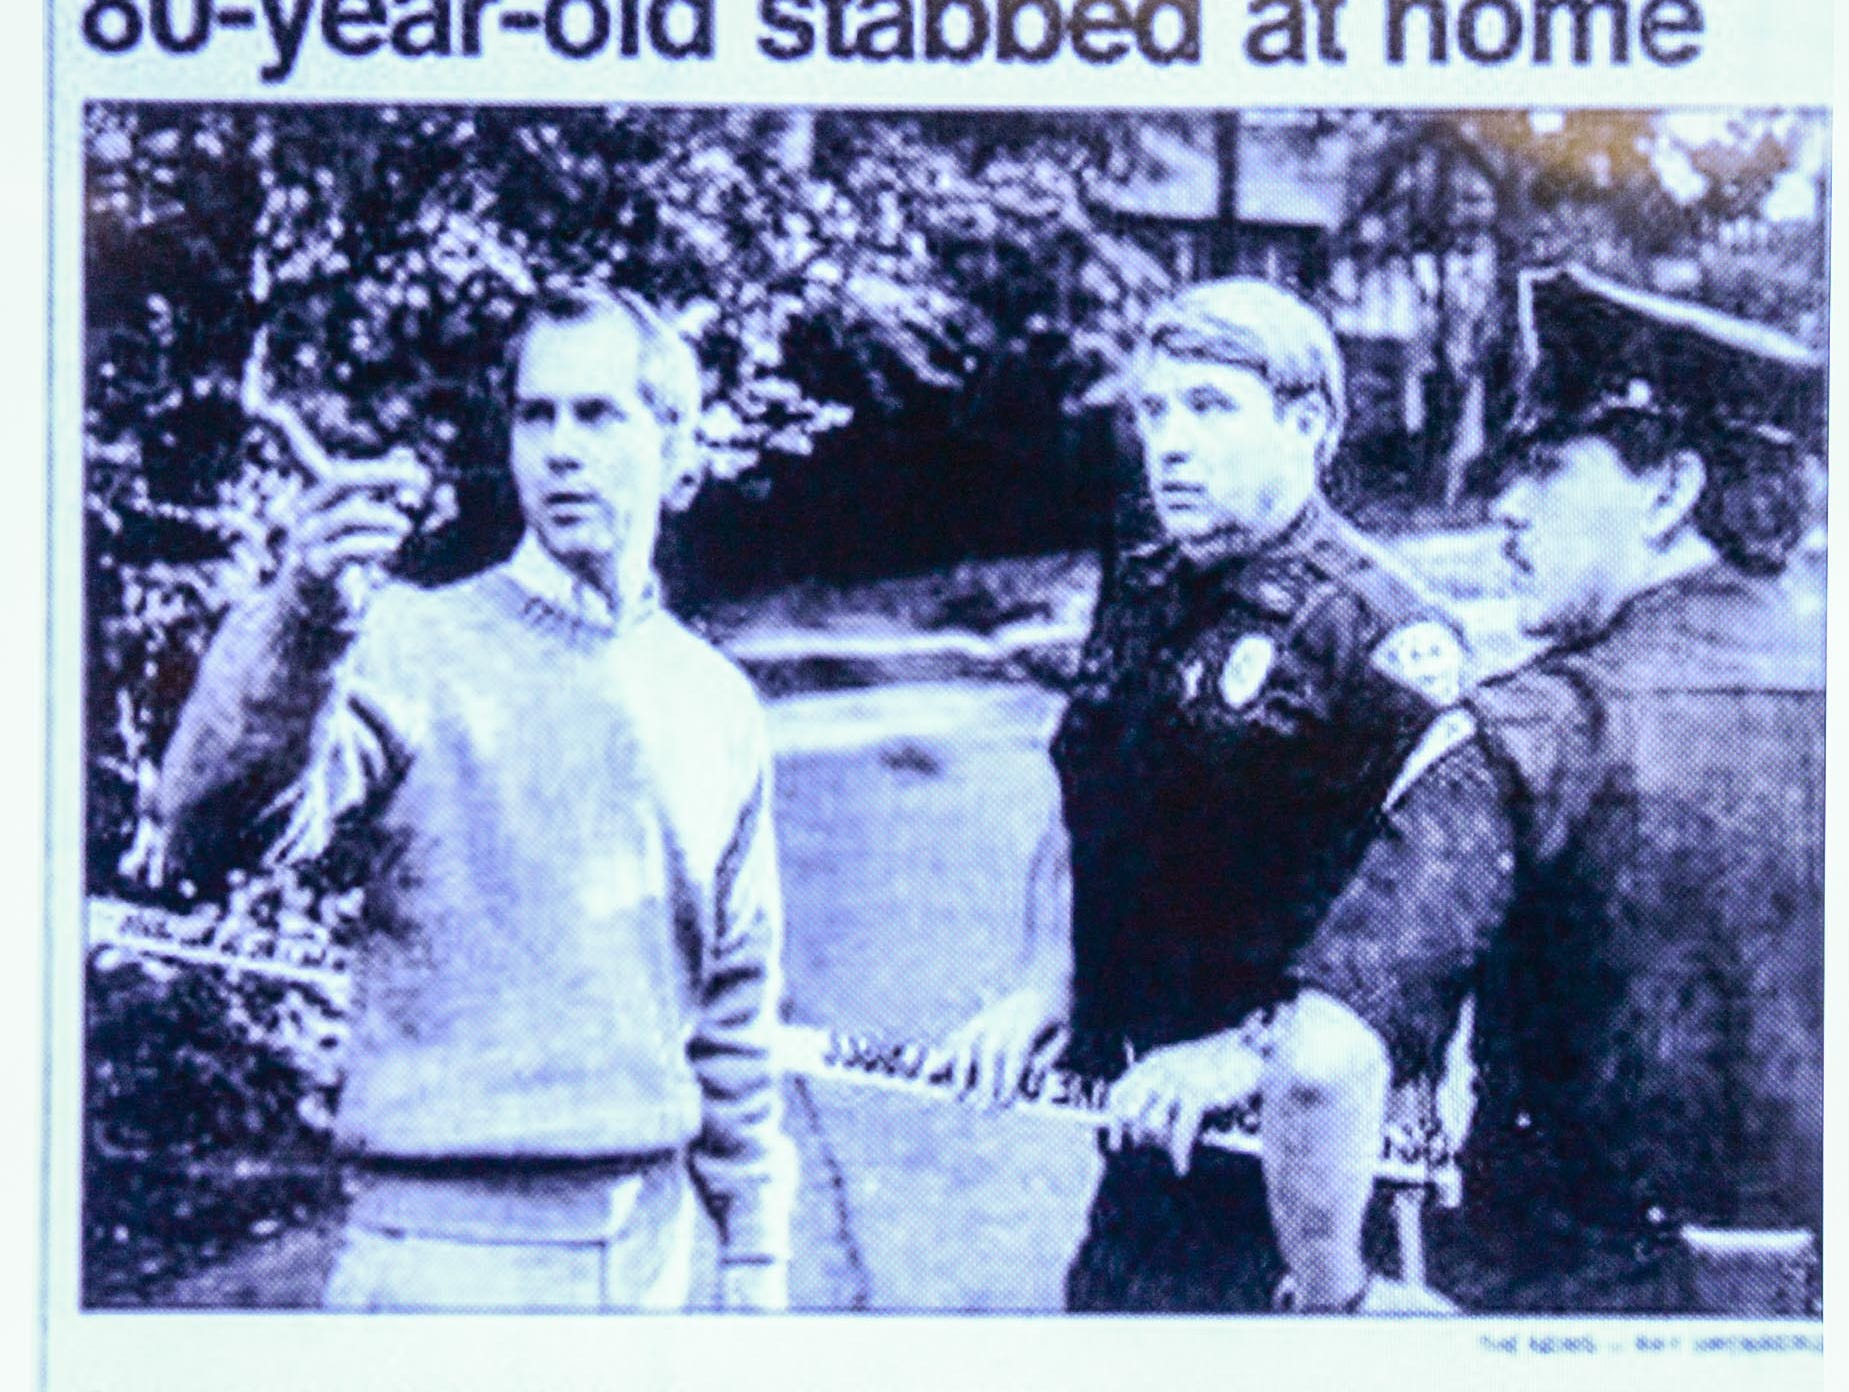 A 1988 Greenville News clipping of a photo from 1988 with then Lt. Don Belue, middle, at the scene where Alice Haynesworth Ryan was stabbed at home, shown on a screen during the announcement of an arrest Monday. Police arrested suspect Brian Keith Munns.